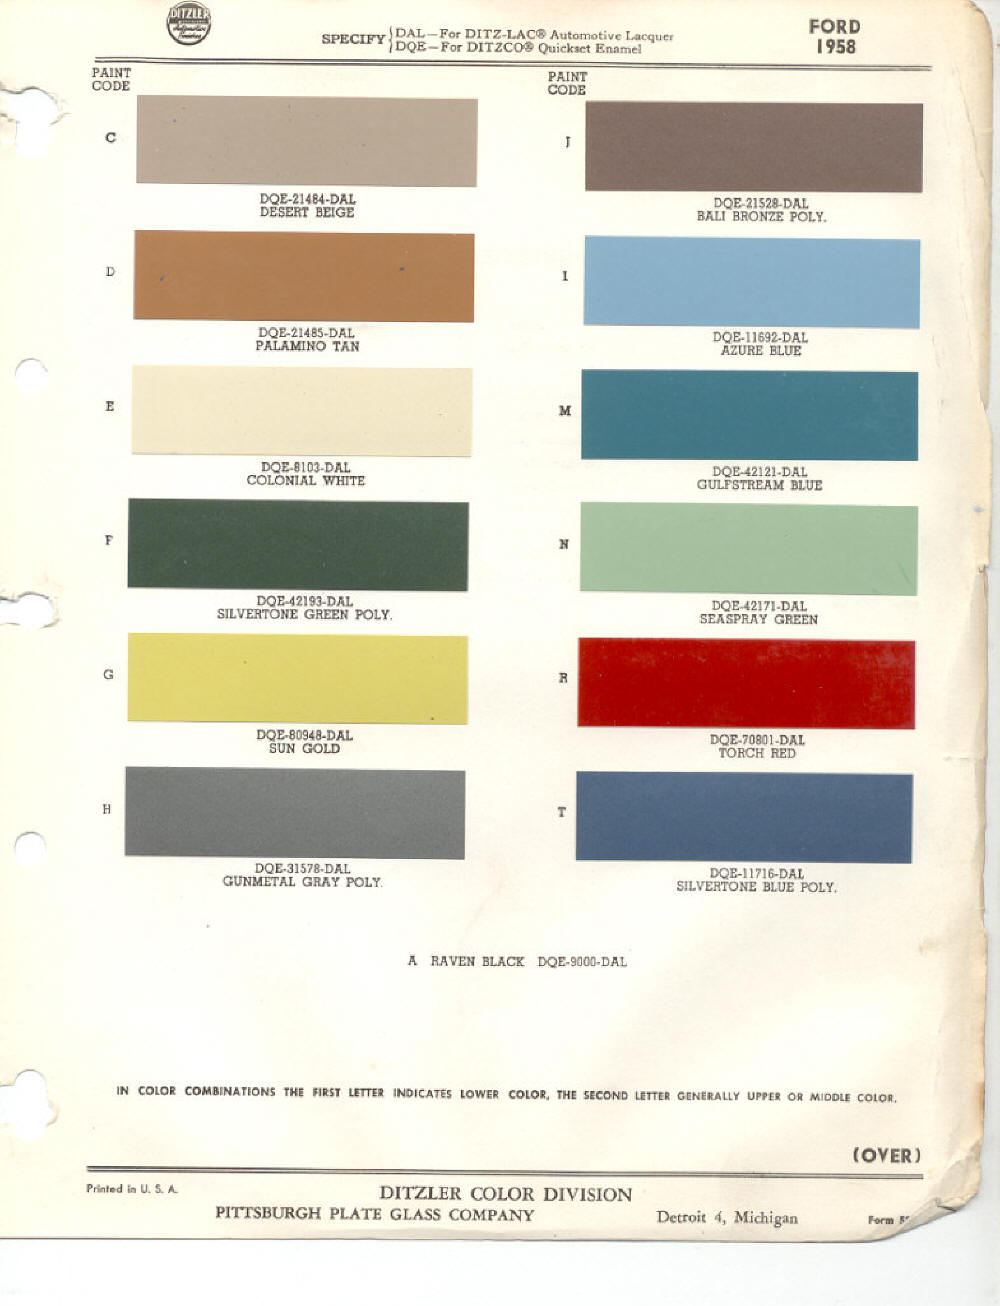 Ford red paint colors paint color ideas 1958 ford paint codes nvjuhfo Choice Image